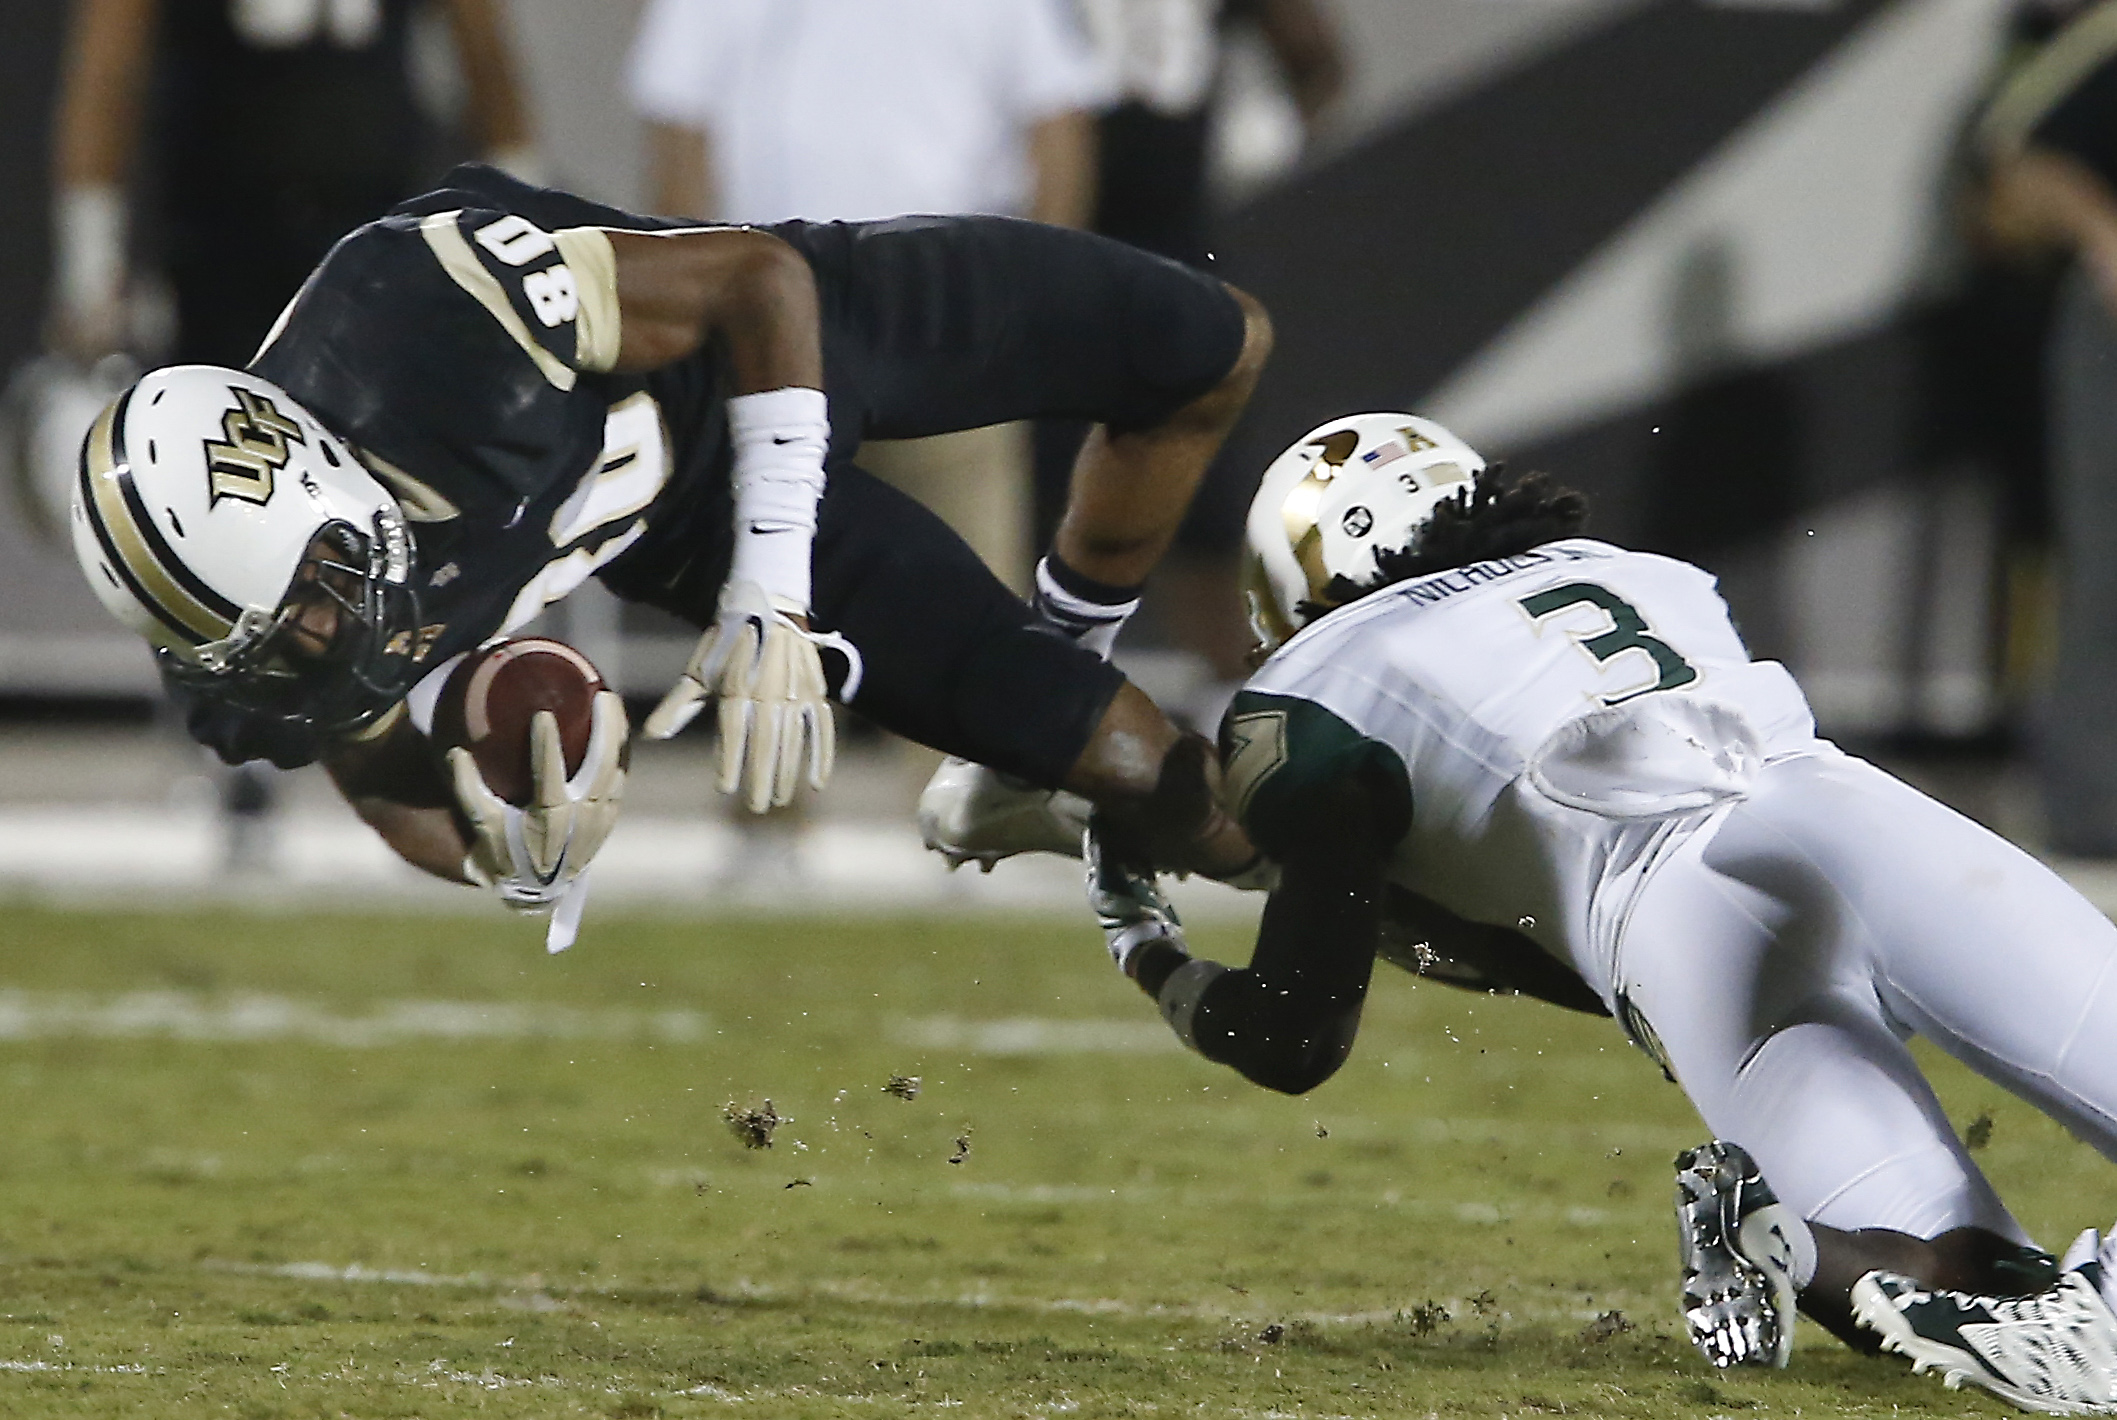 Expect Ucf S Terrible 2015 To Become A Distant Memory Under Scott